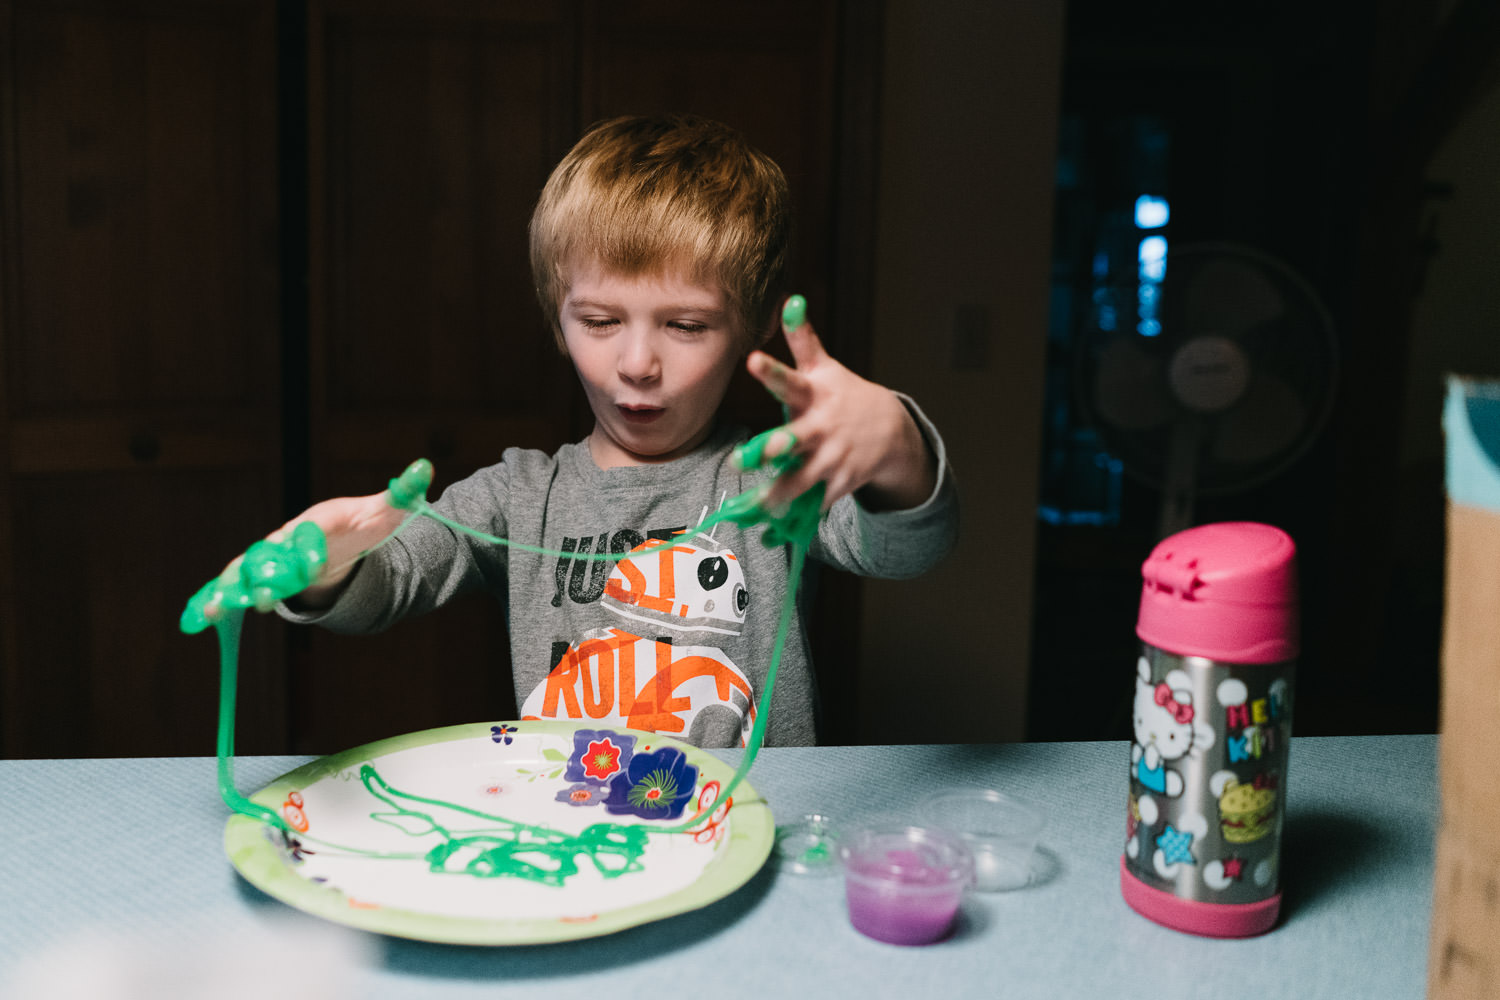 A little boy plays with green slime.